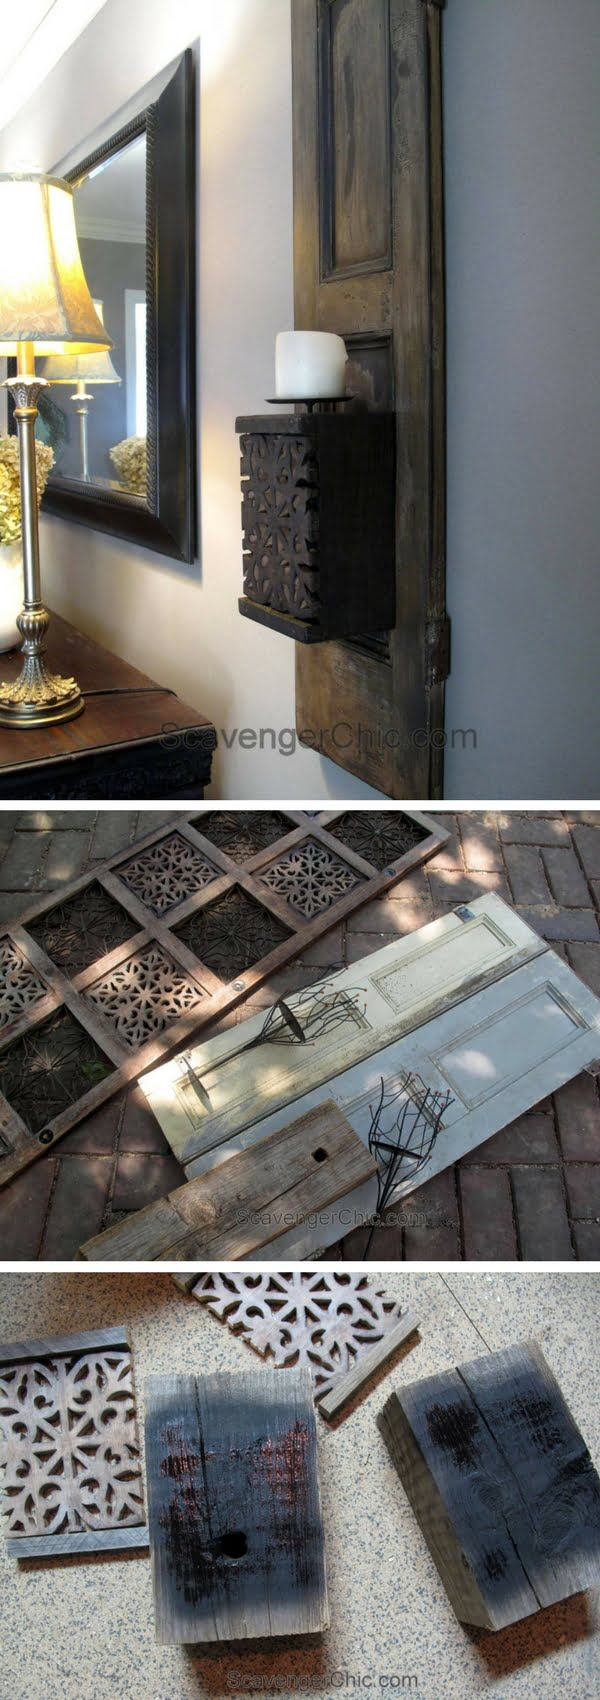 Check out how to make a DIY wall candle sconce from an old shutter